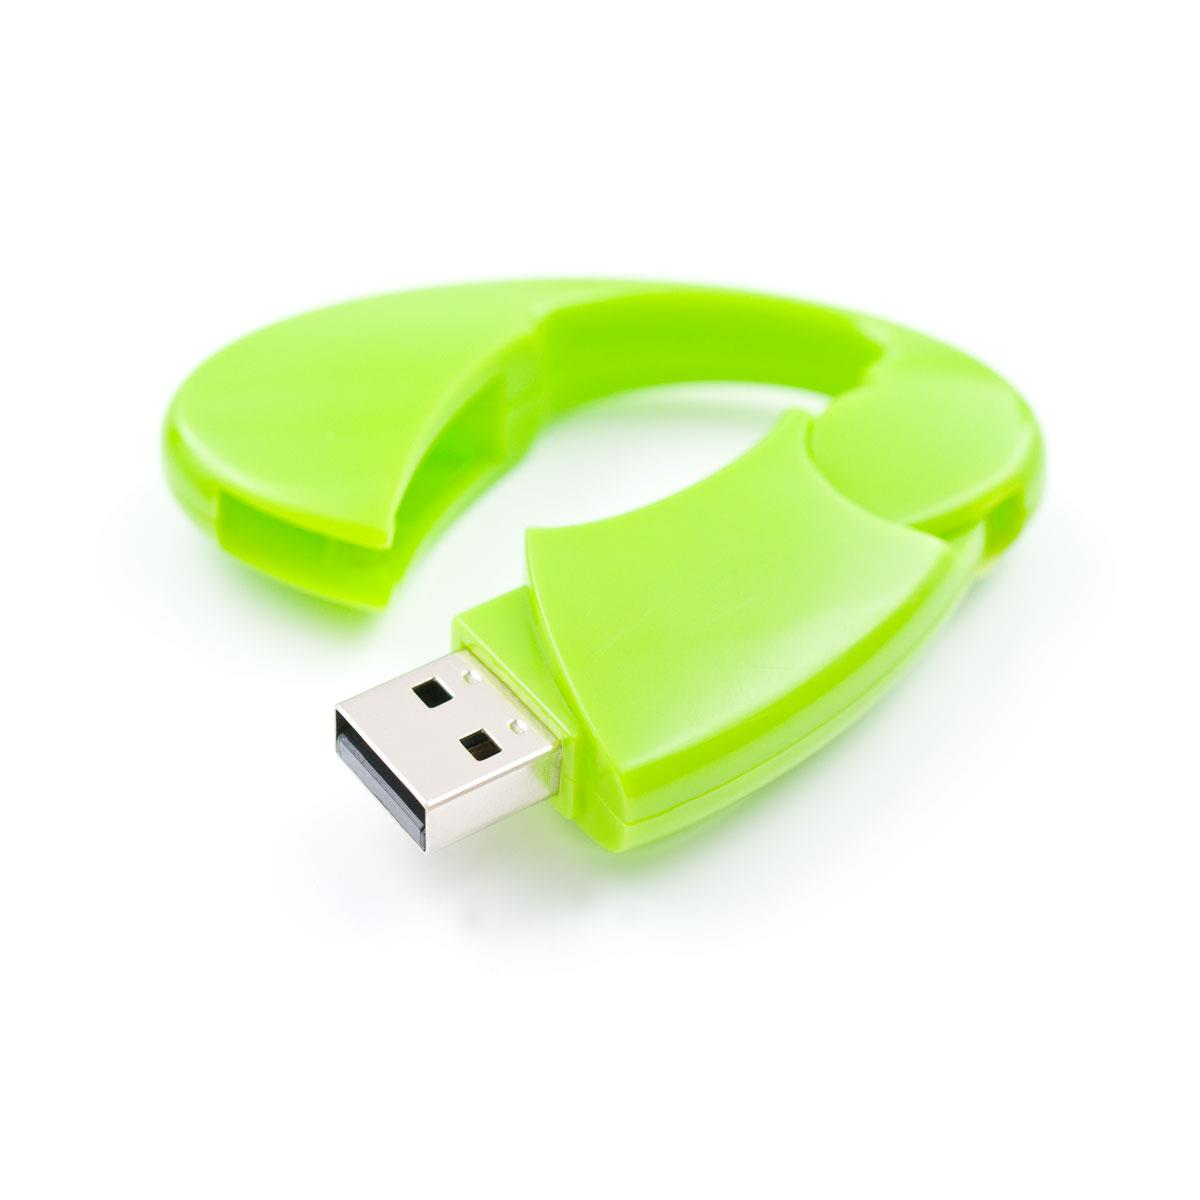 USB Stick Snag 16 GB